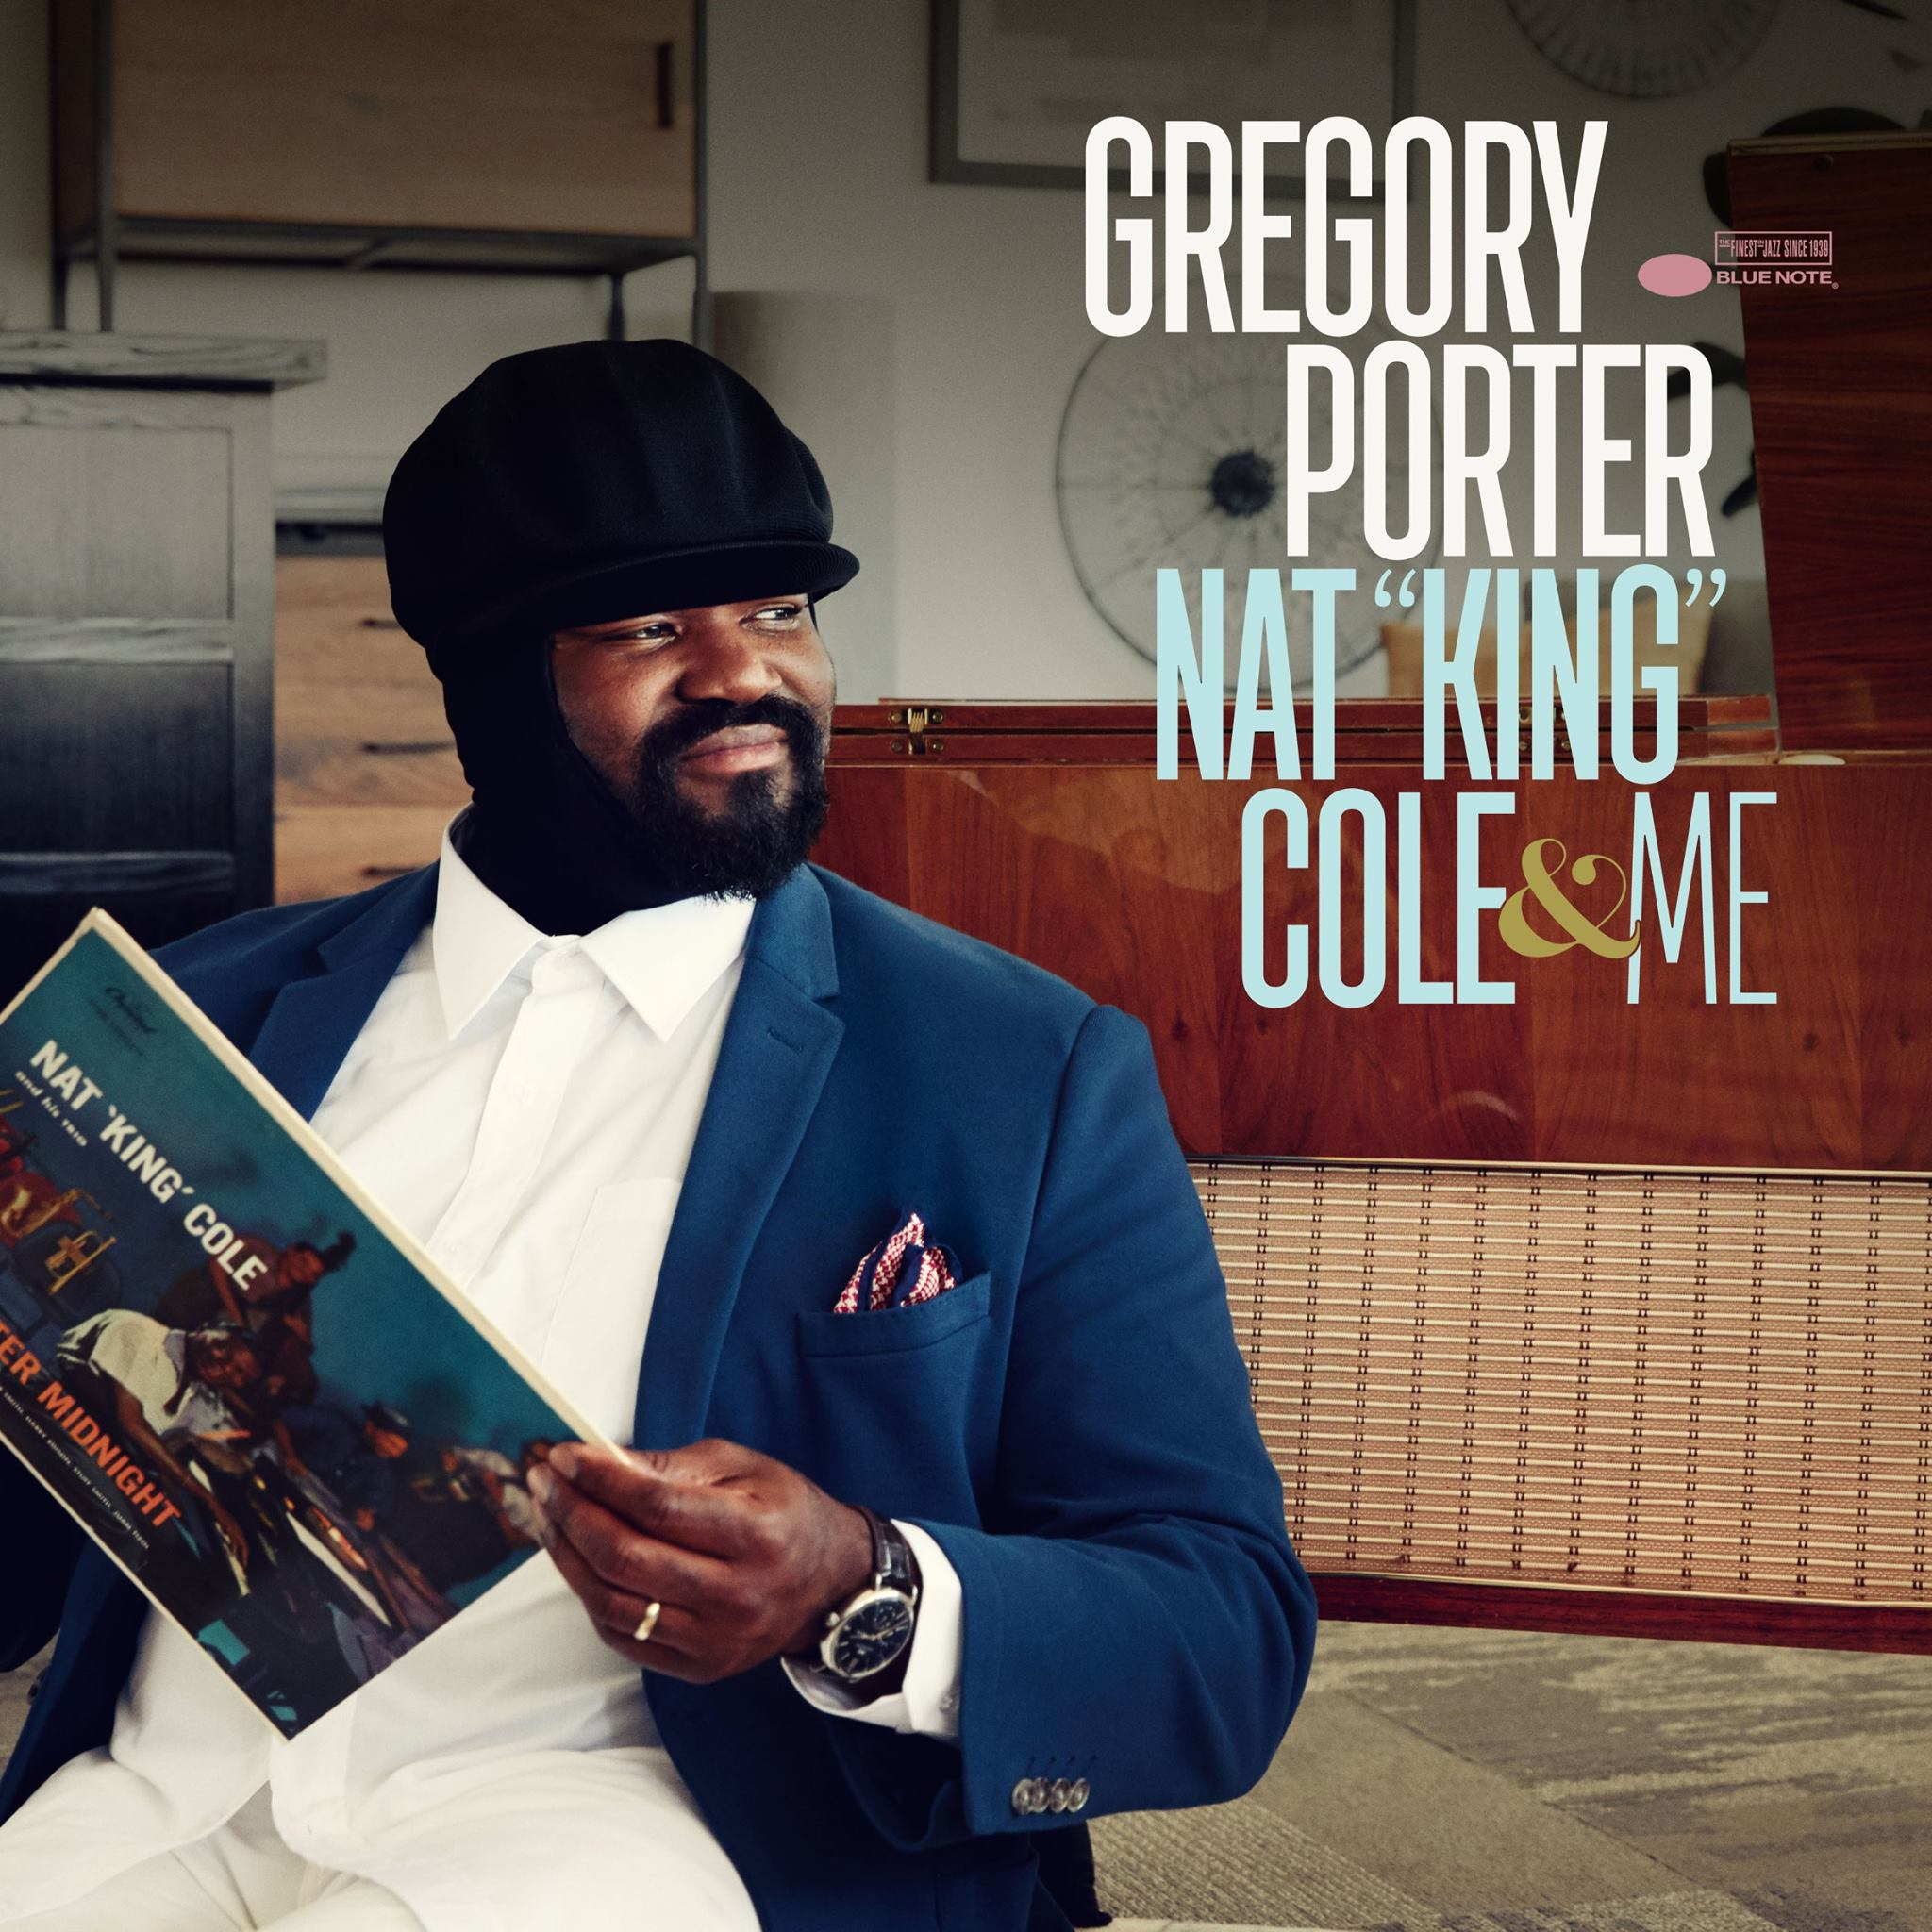 Le Meilleur Gregory Porter – Nat King Cole Me Review Culturefly Ce Mois Ci